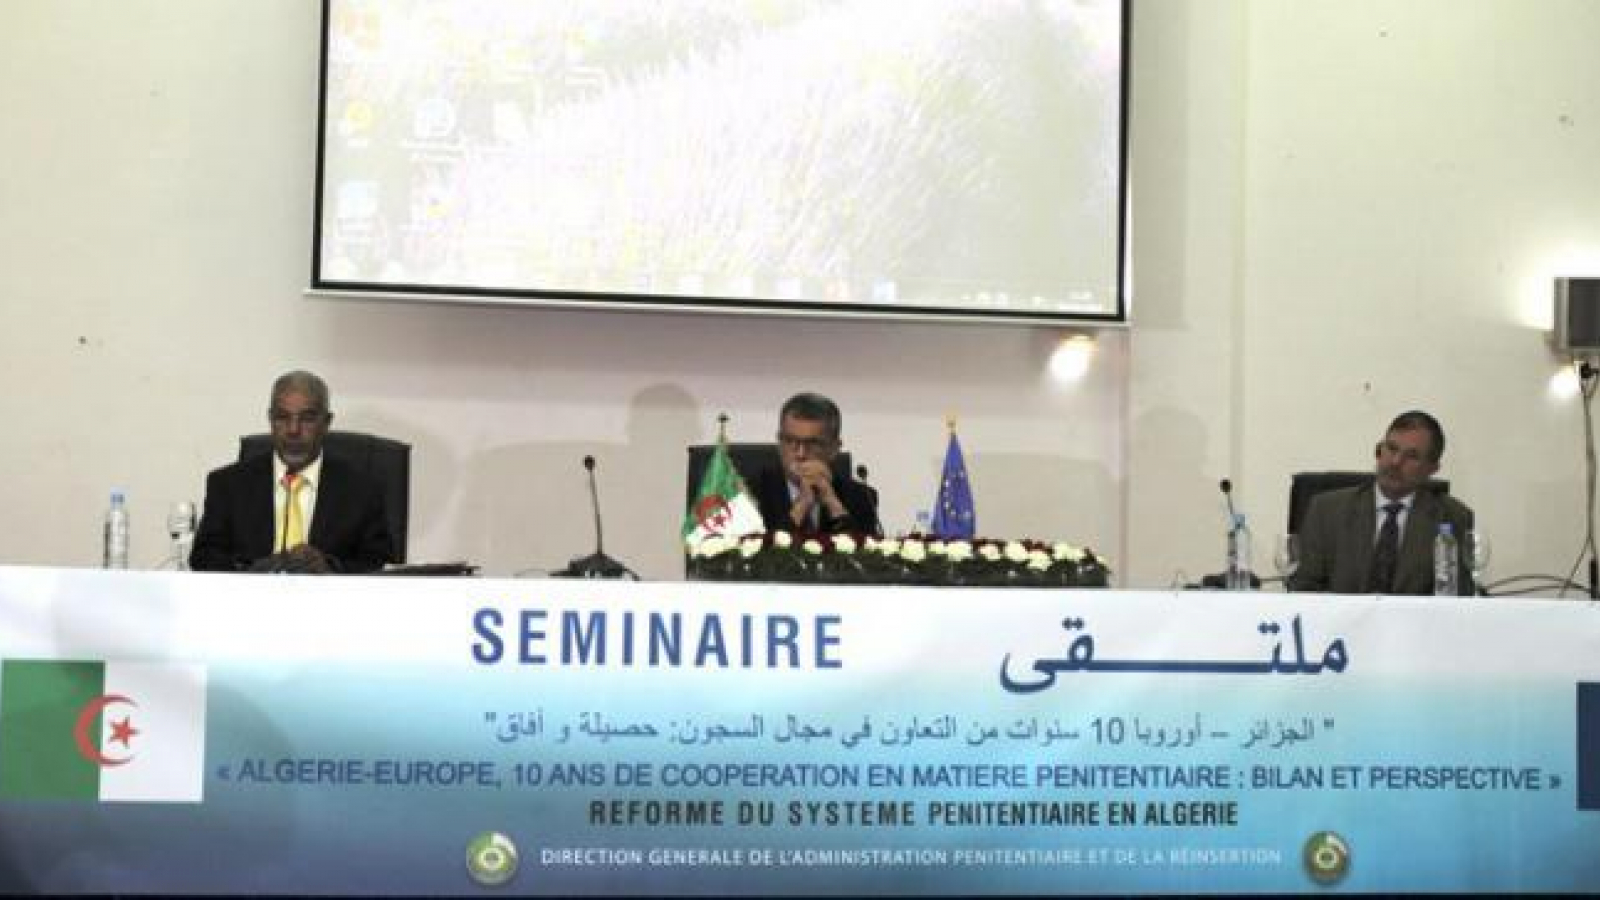 The EU hails the efforts of Algeria in terms of prison reform